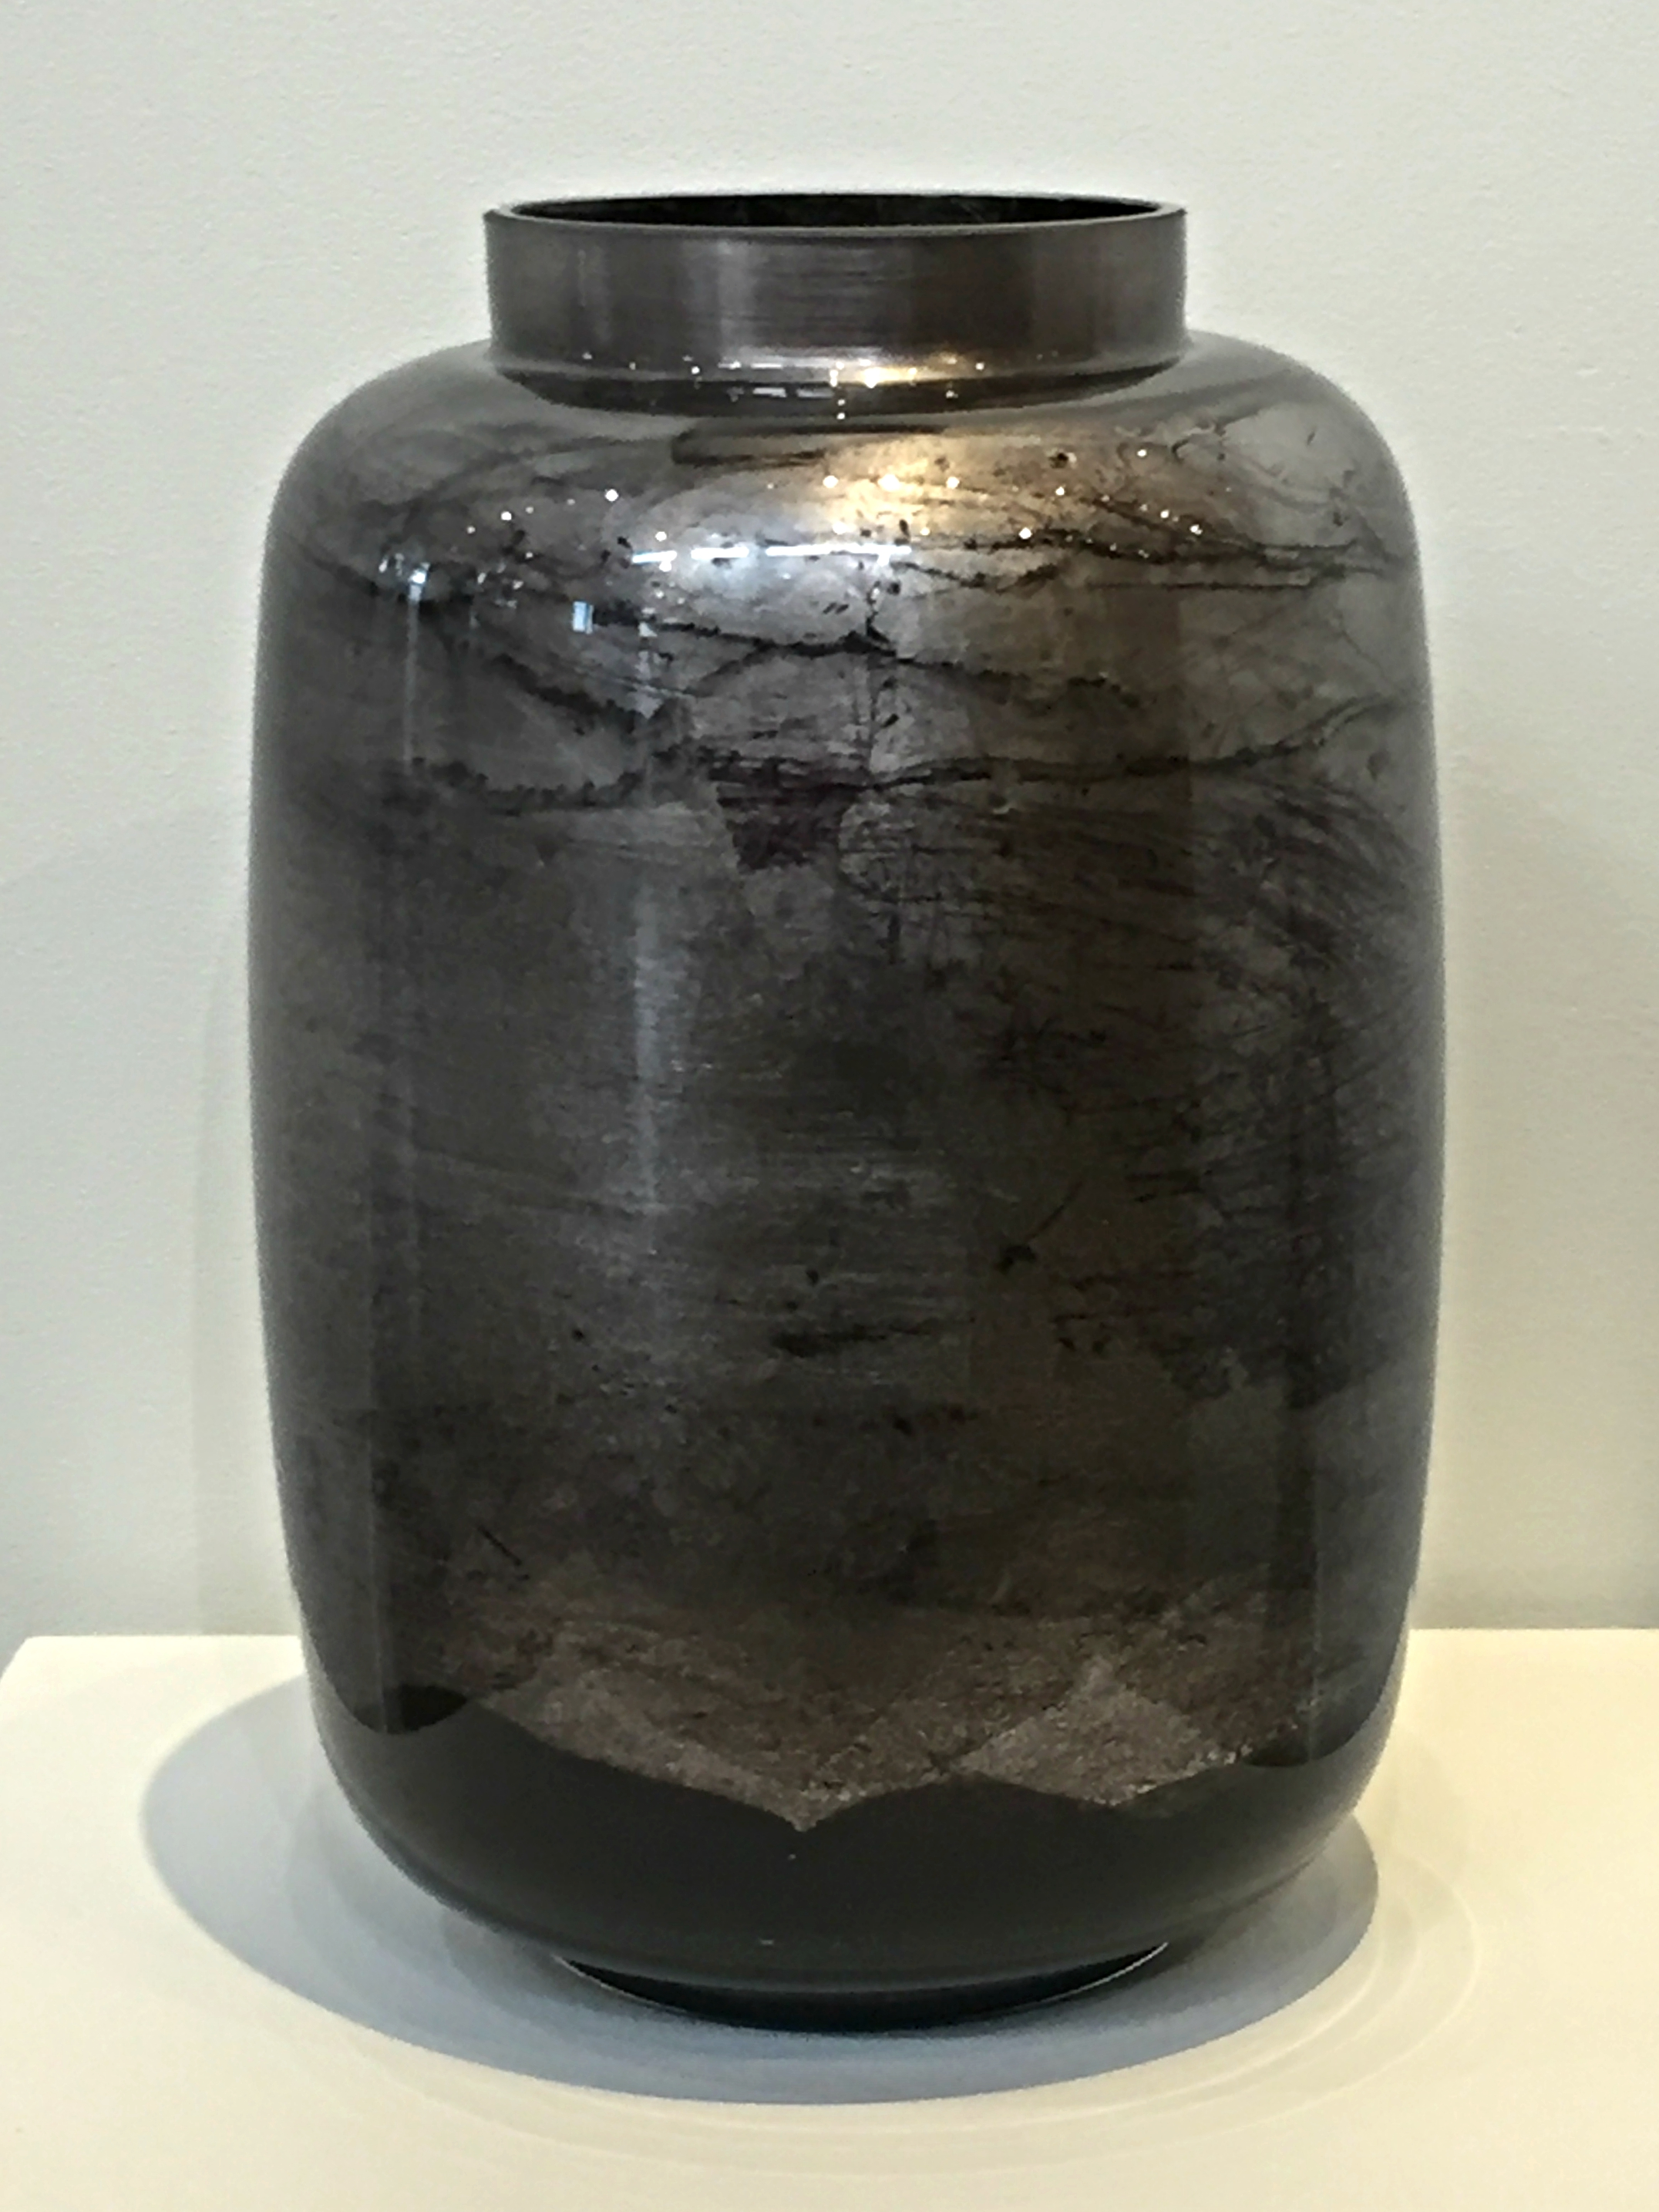 Silver hand-gilded Mandarin vase by David Graff | Effusion Art Gallery + Cast Glass Studio, Invermere BC